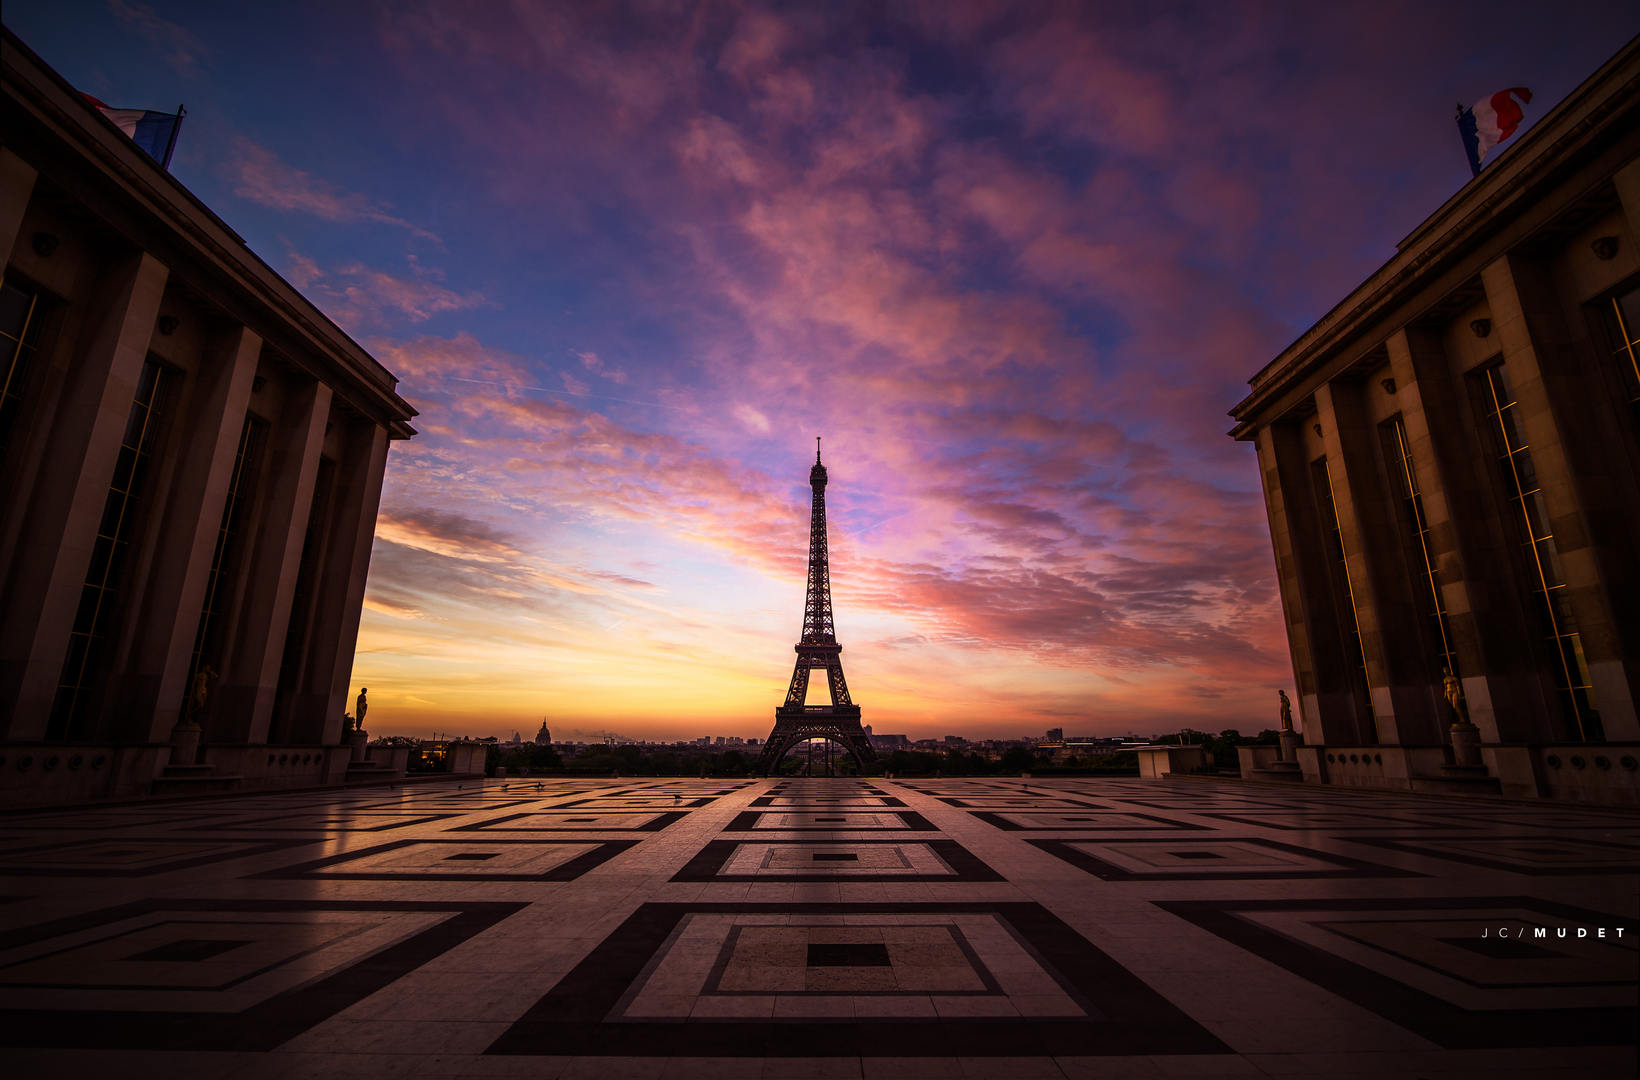 Alone with the Eiffel Tower